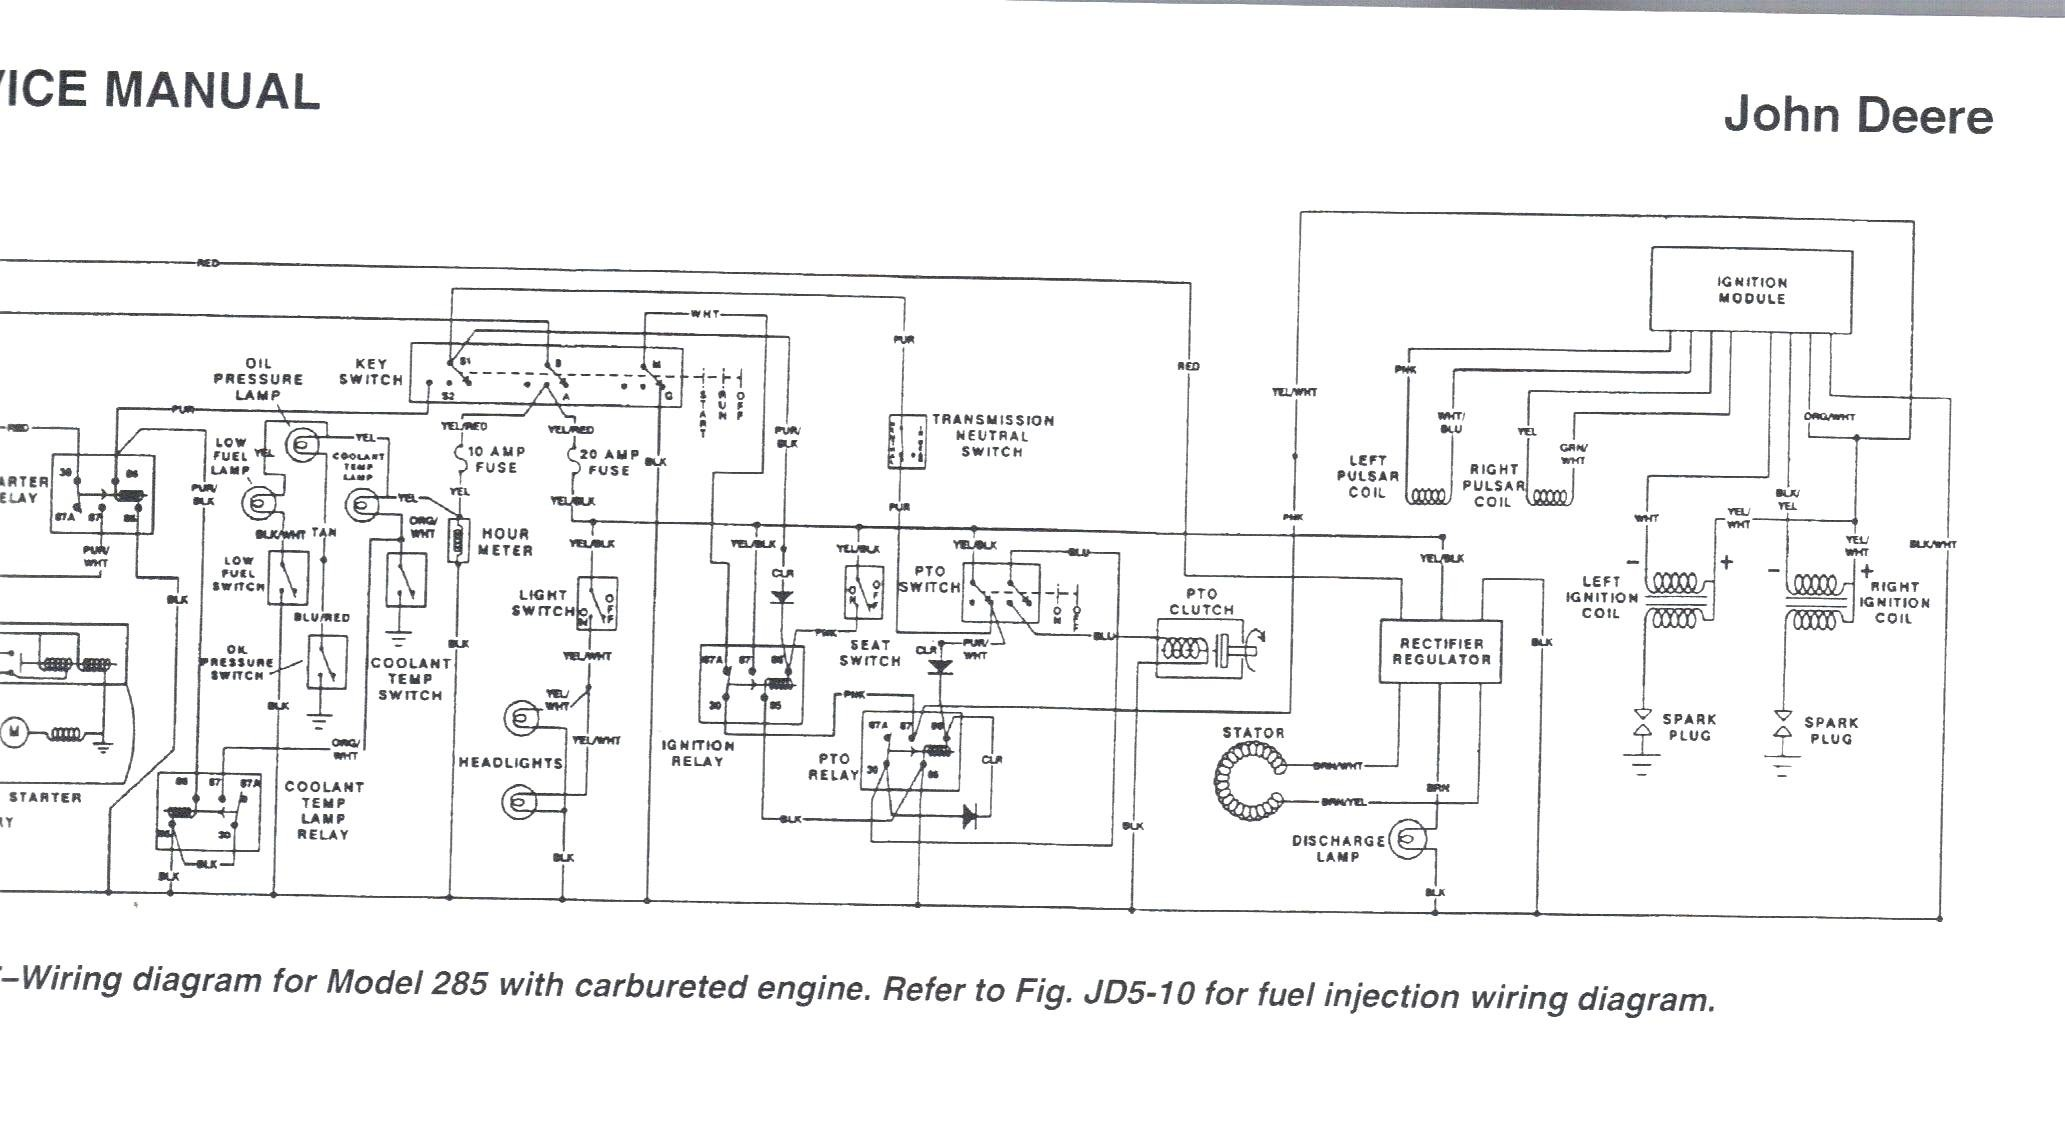 John Deere Z245 Wiring Diagram. electrical diagram for